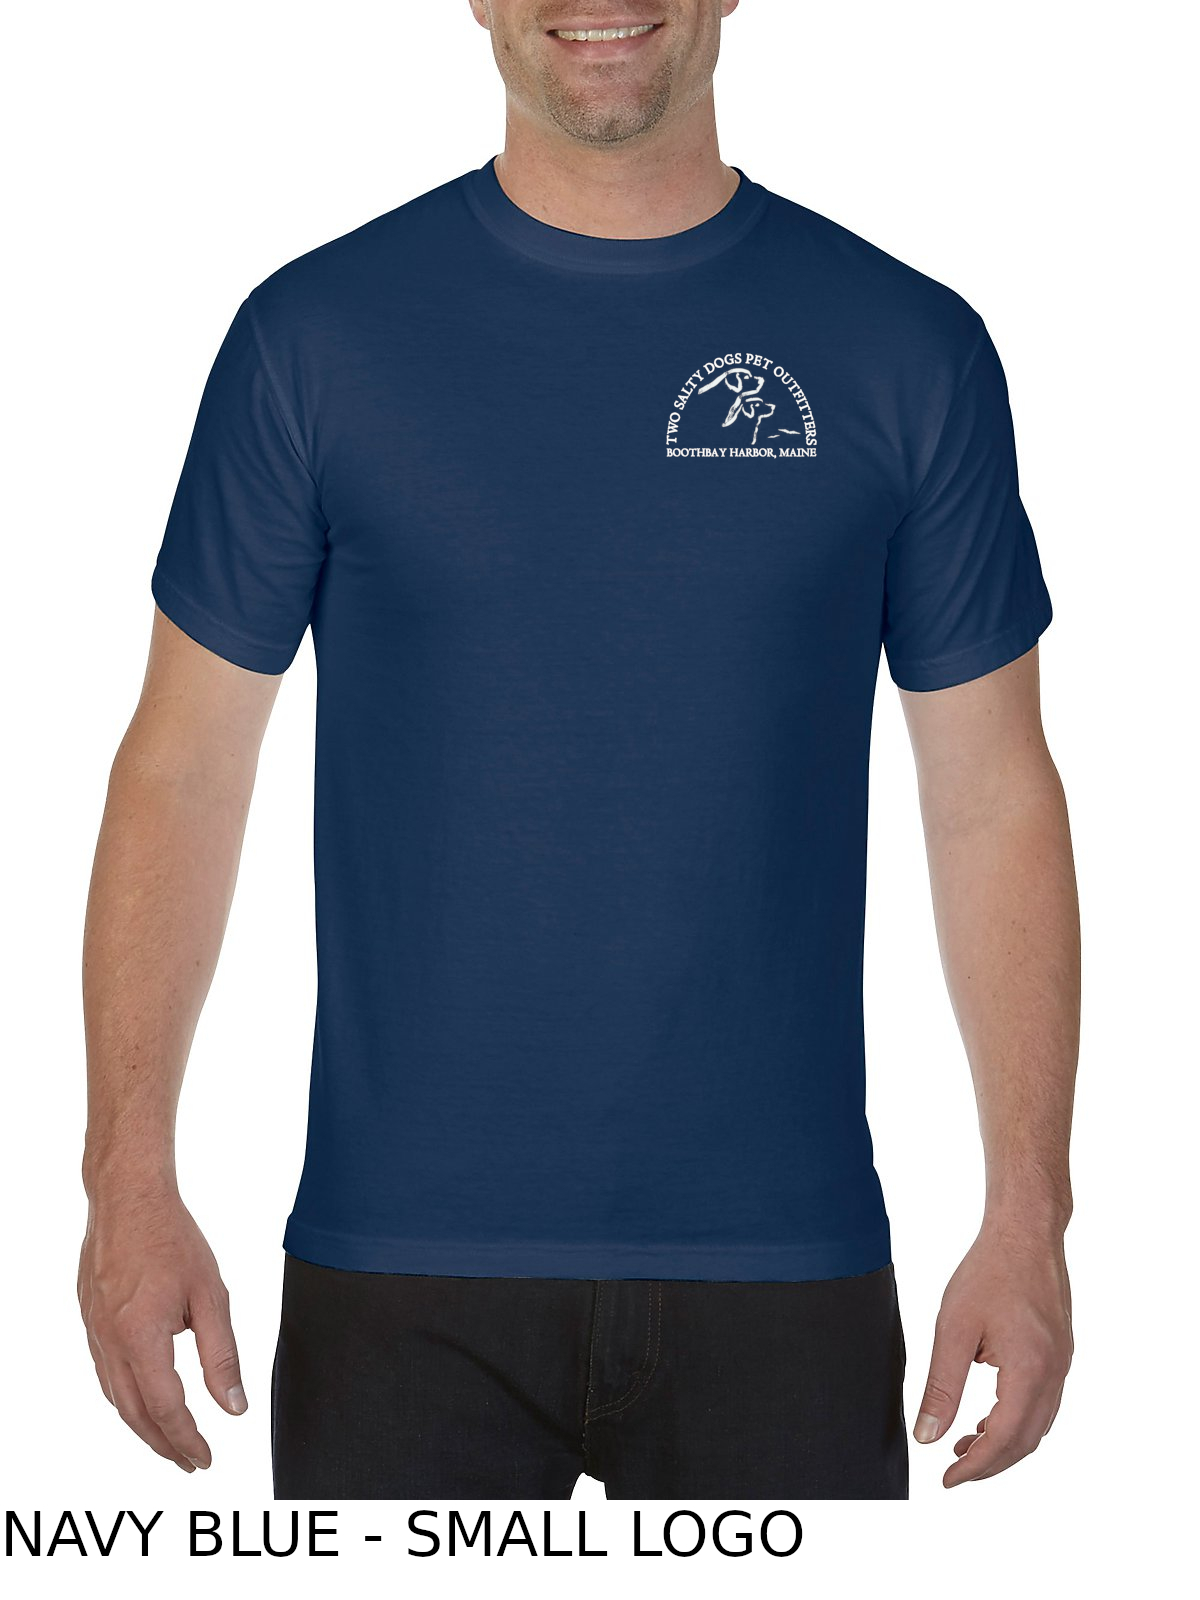 bbha-ss-t-shirt-no-pocket-navy-blue-front-small-logo